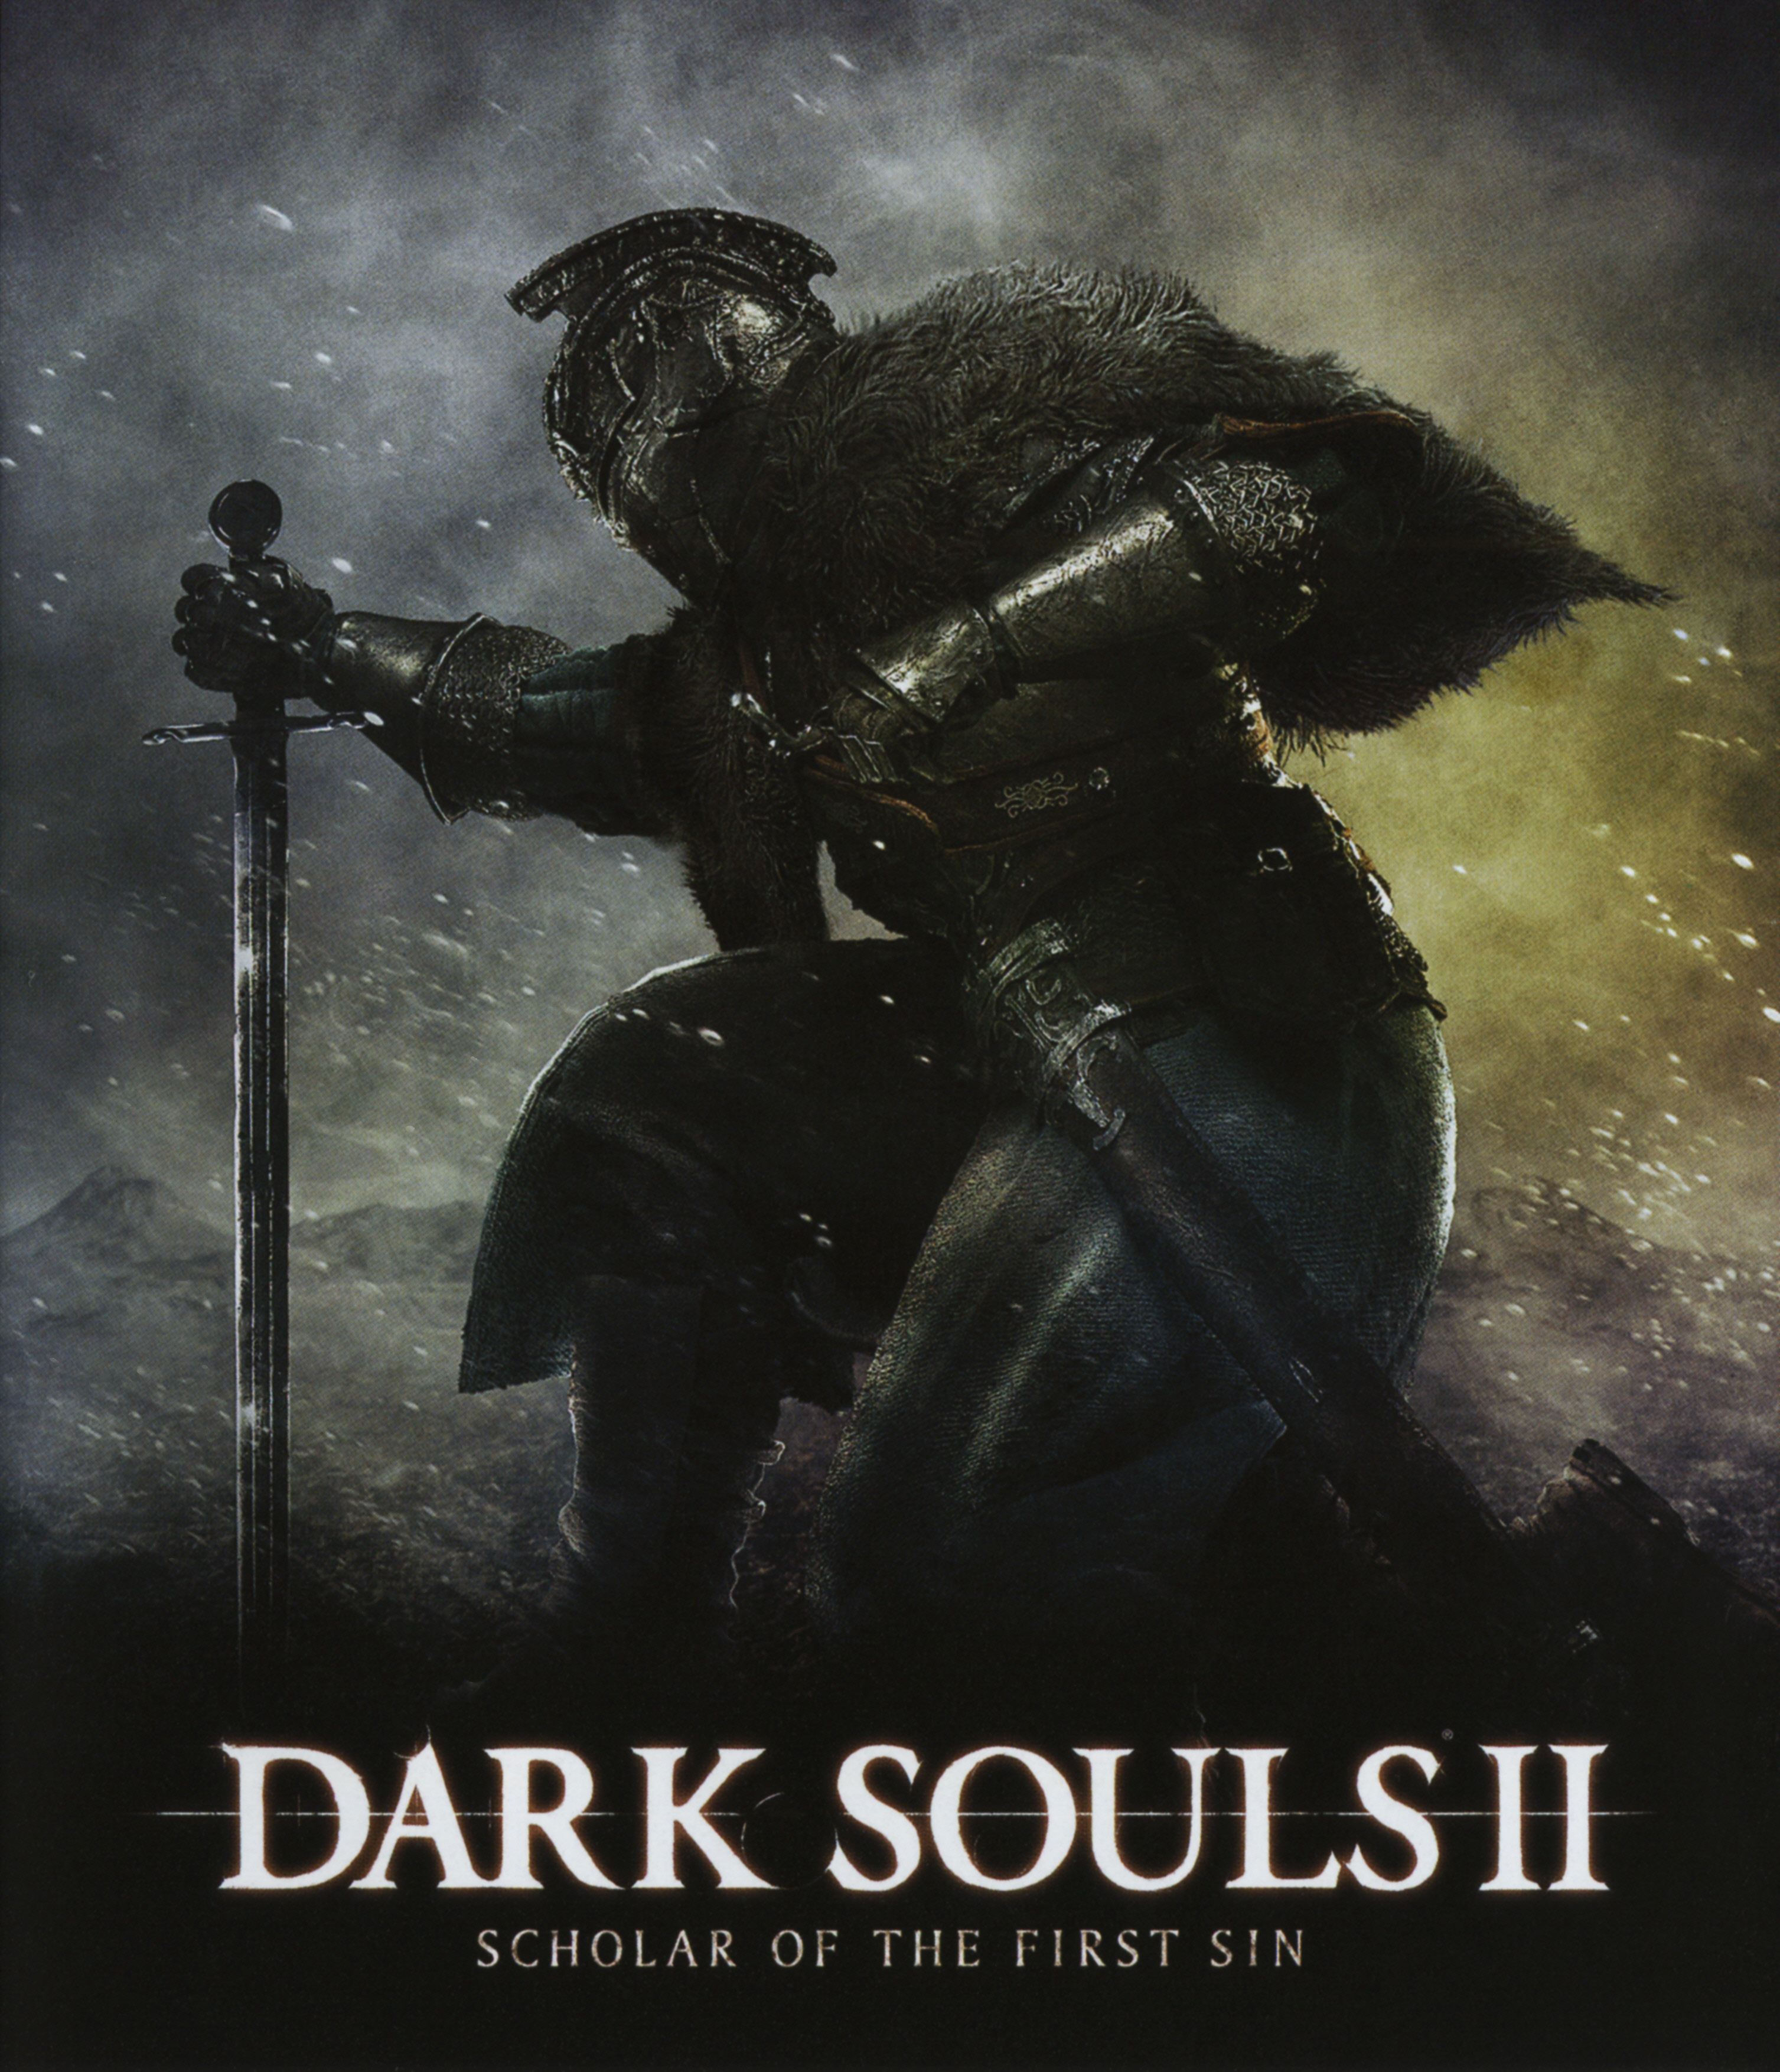 Dark Souls 2 Scholar of the First Sin free patch detailed